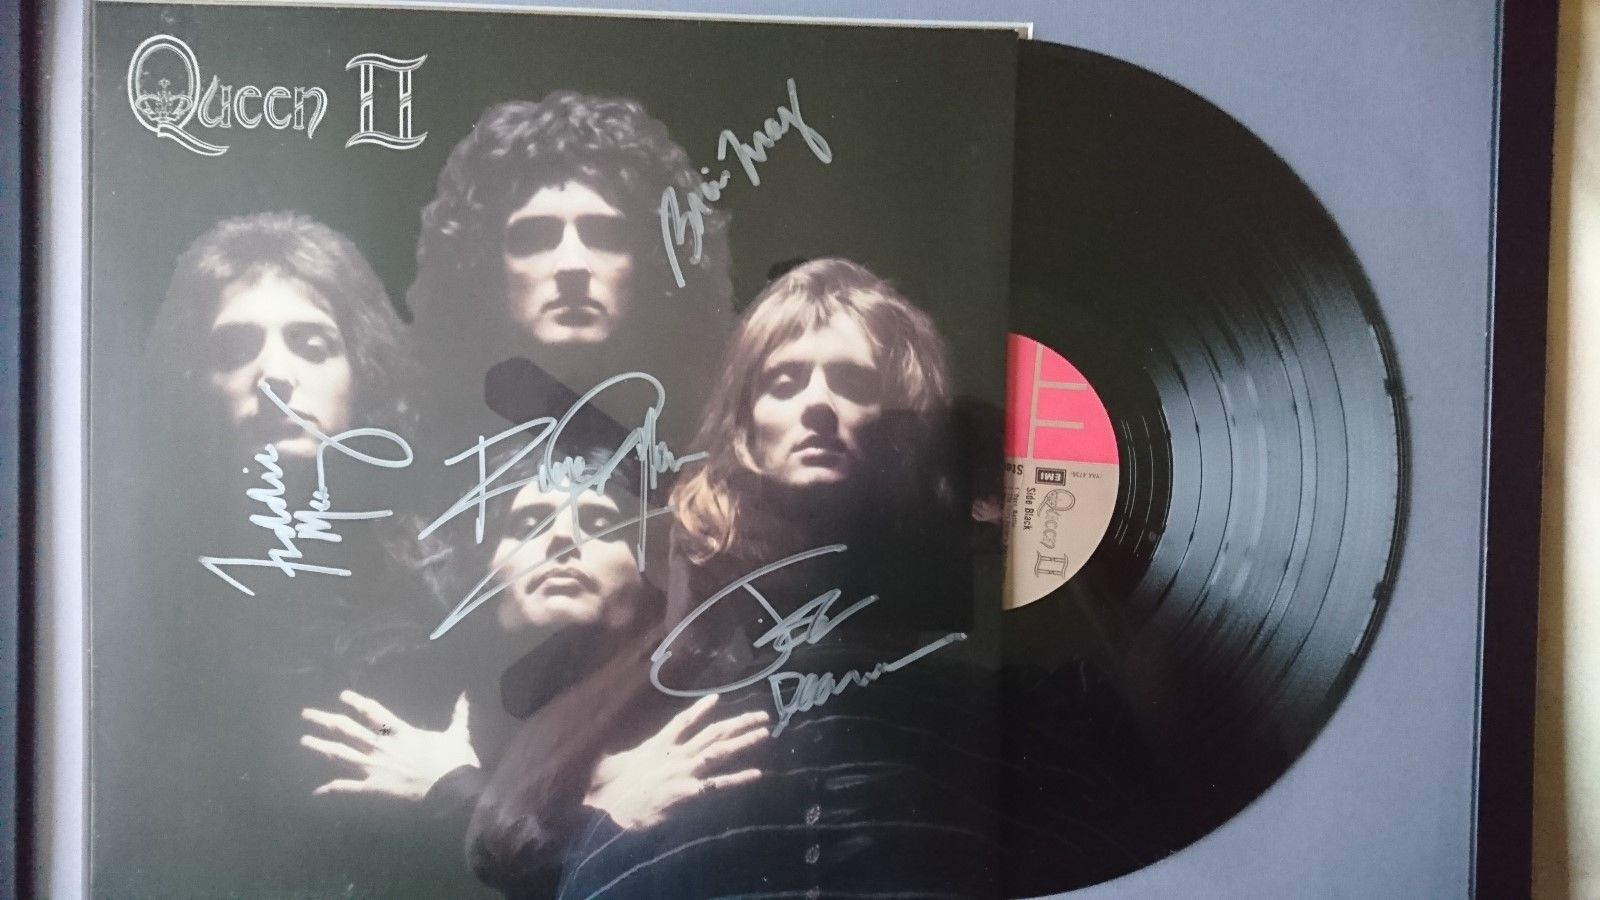 Queen 2, Album, signed by all band members including Freddie Mercury.